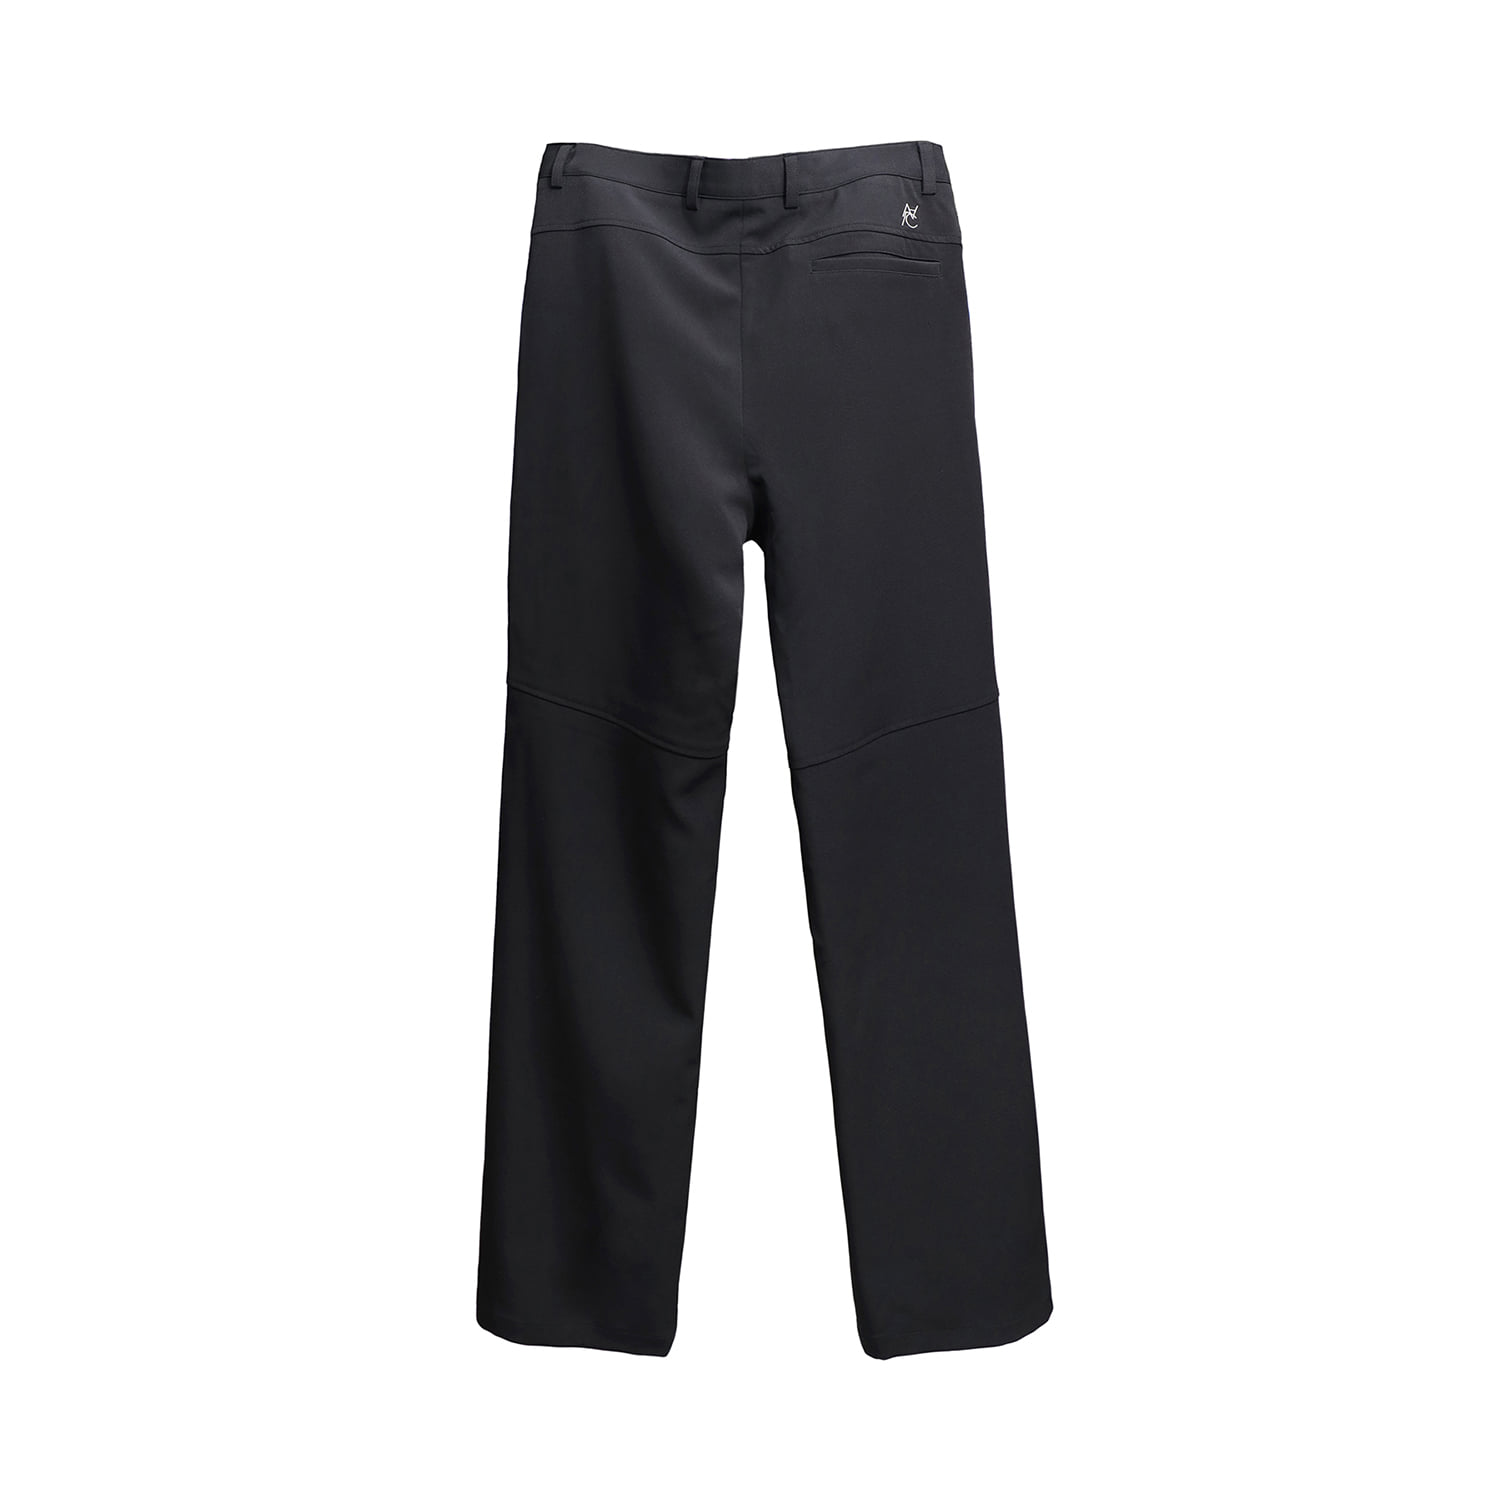 Zippered Straight/Bootcut Trouser (black)